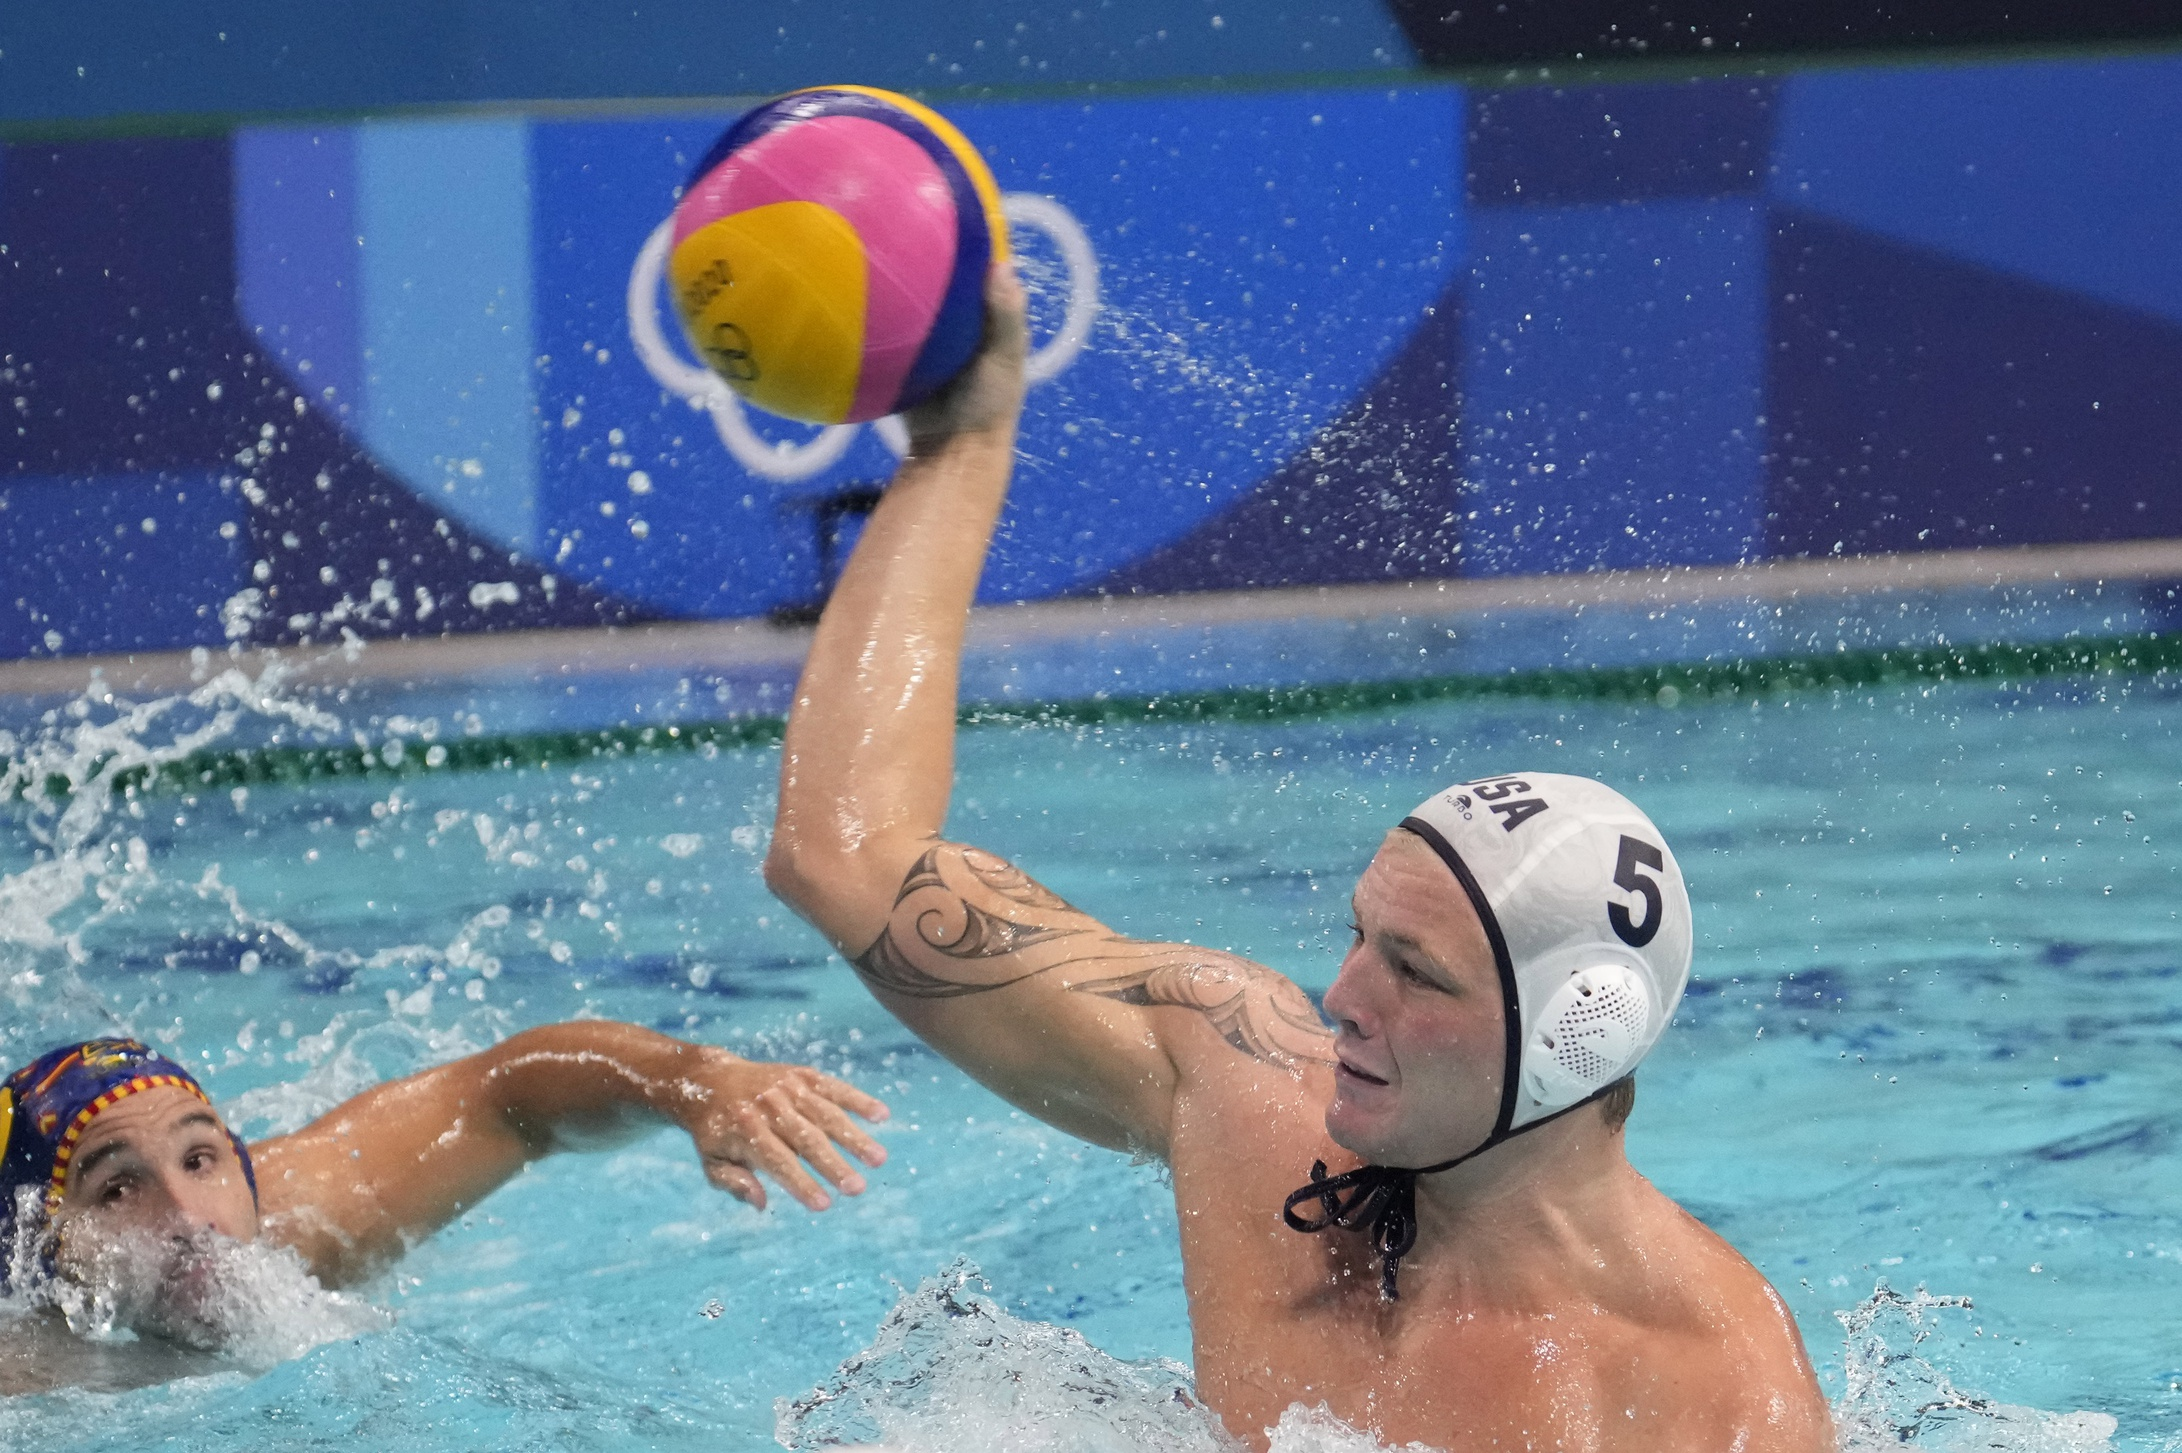 Aug 4, 2021; Tokyo, Japan; Team United States driver Hannes Daube (5) throws the ball against Spain in a men's water polo quarterfinal during the Tokyo 2020 Olympic Summer Games at Tatsumi Water Polo Centre. Mandatory Credit: Robert Hanashiro-USA TODAY Sports